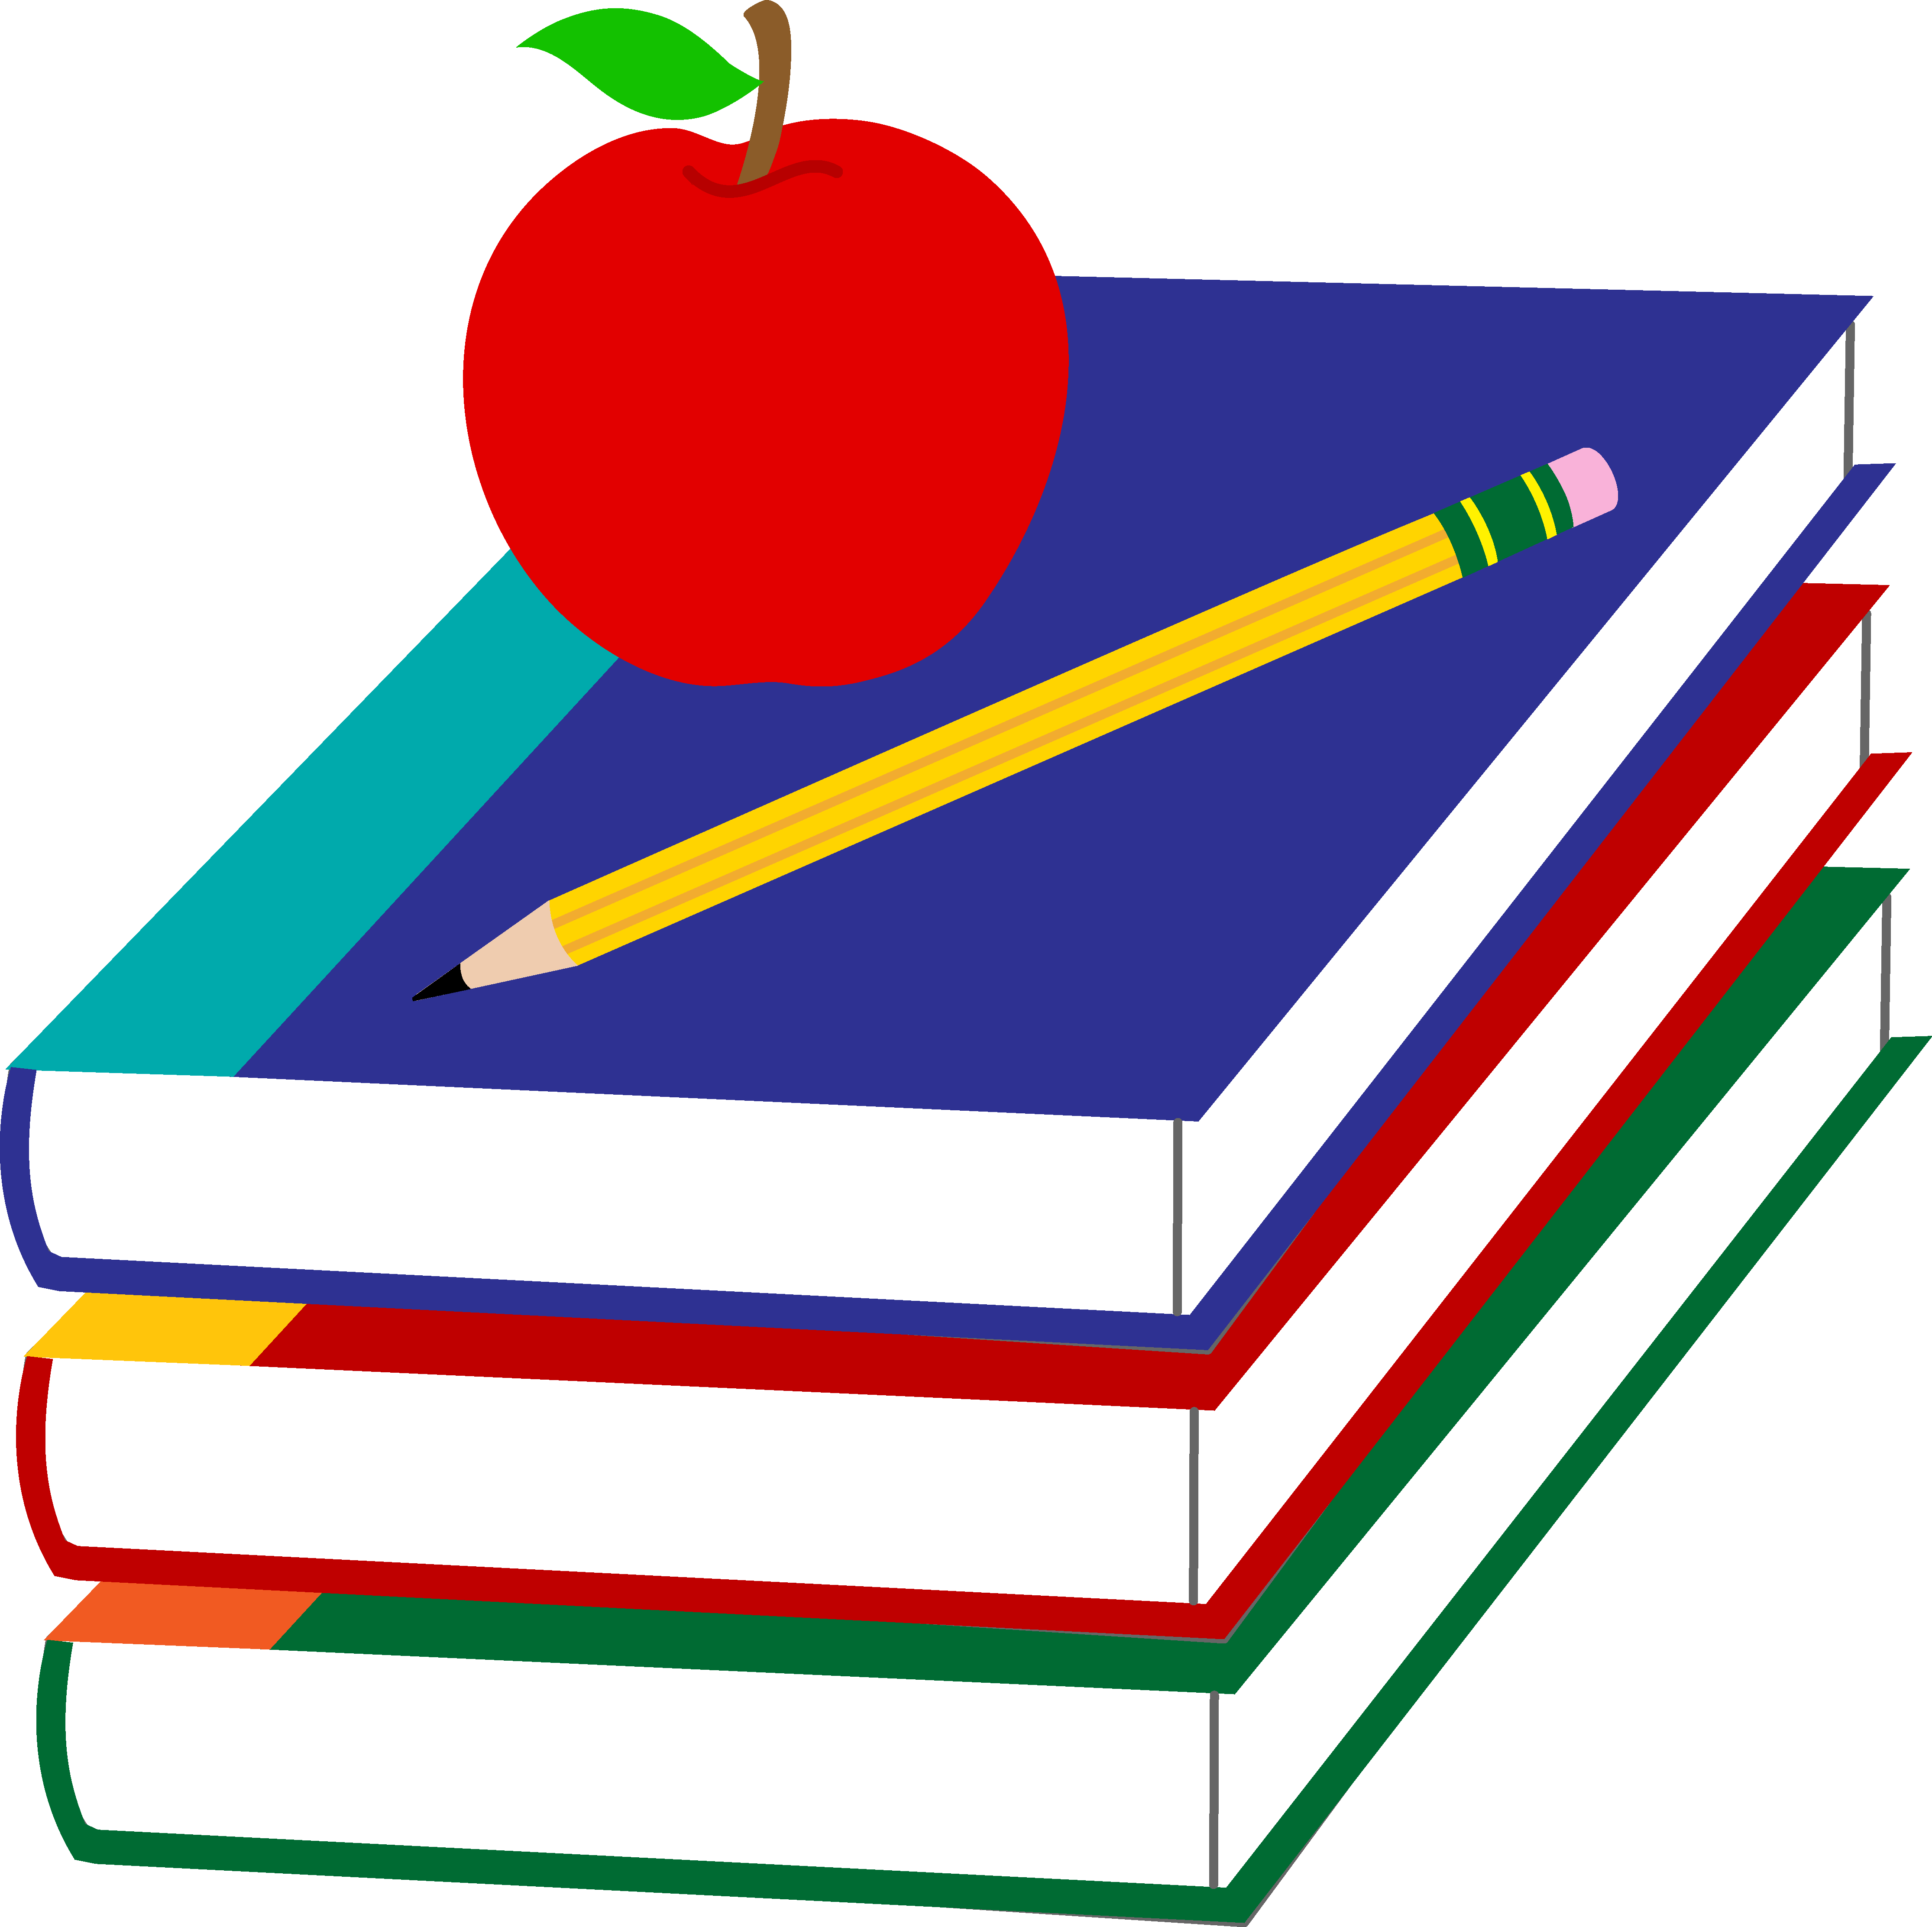 Book clipart education Download Education Free Art Book